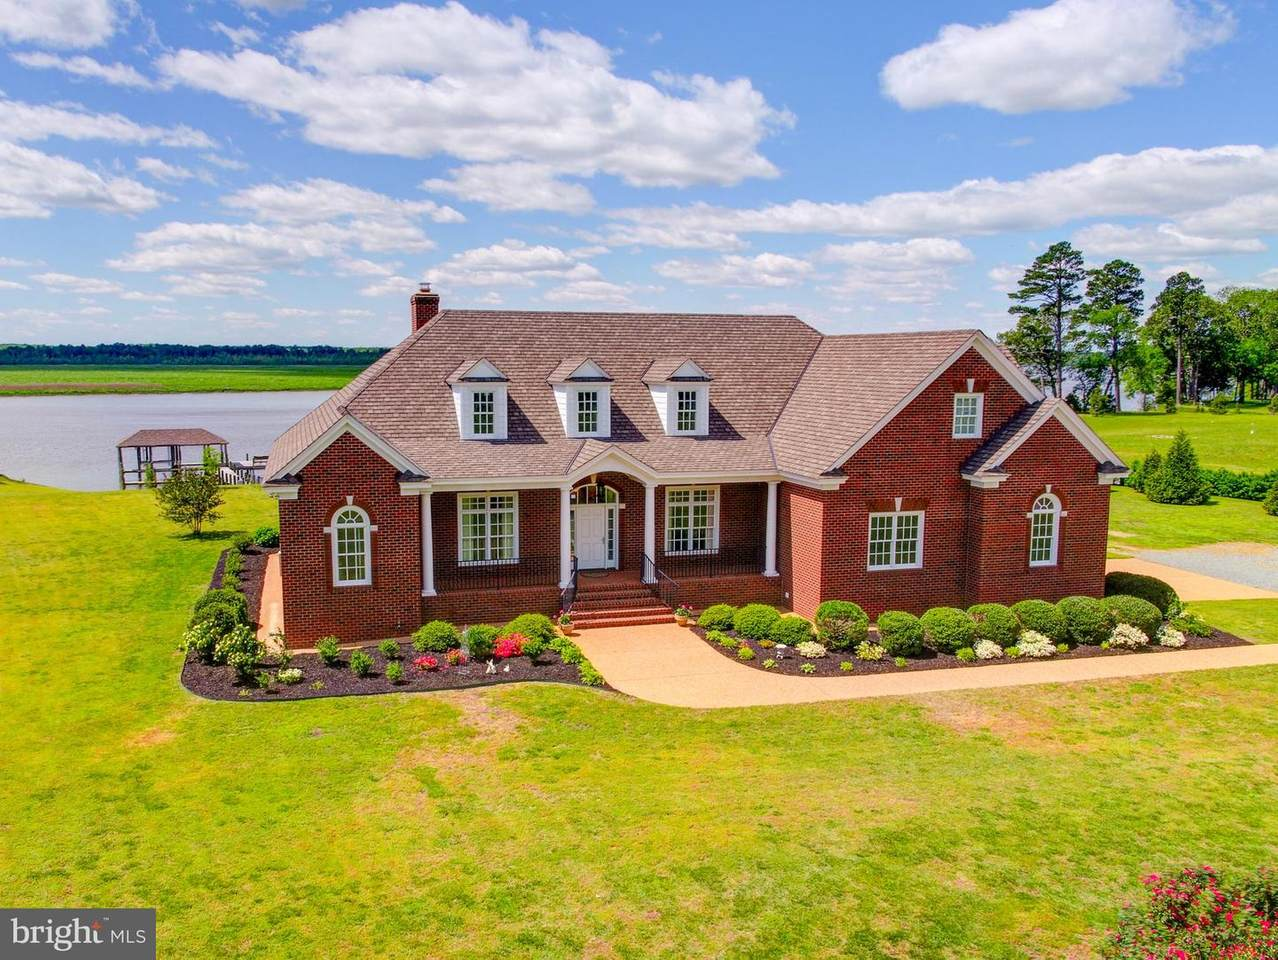 353 Waterville Cove - Photo 1